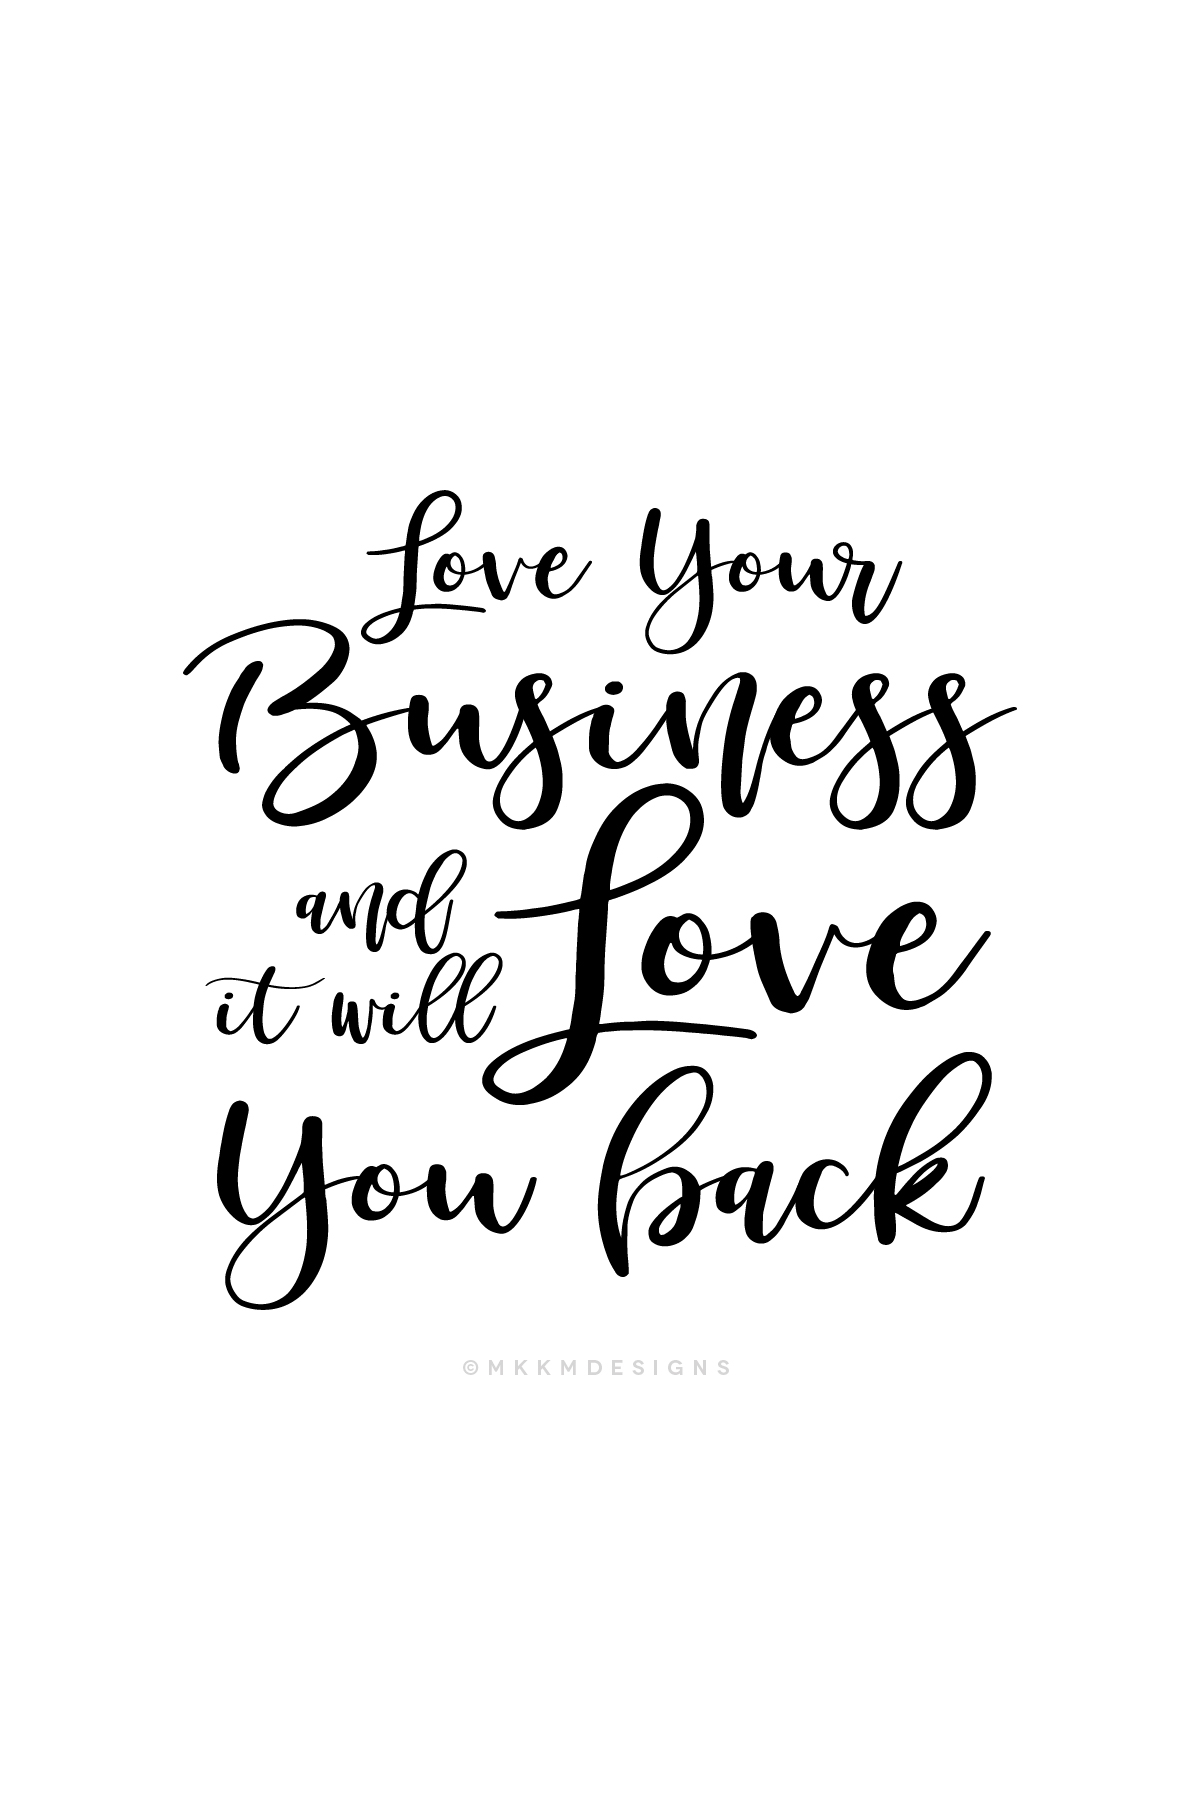 Love your business and it will love you back - Monday Motivation for Boss Ladies and Mompreneurs  // Quotes from MKKMDesigns